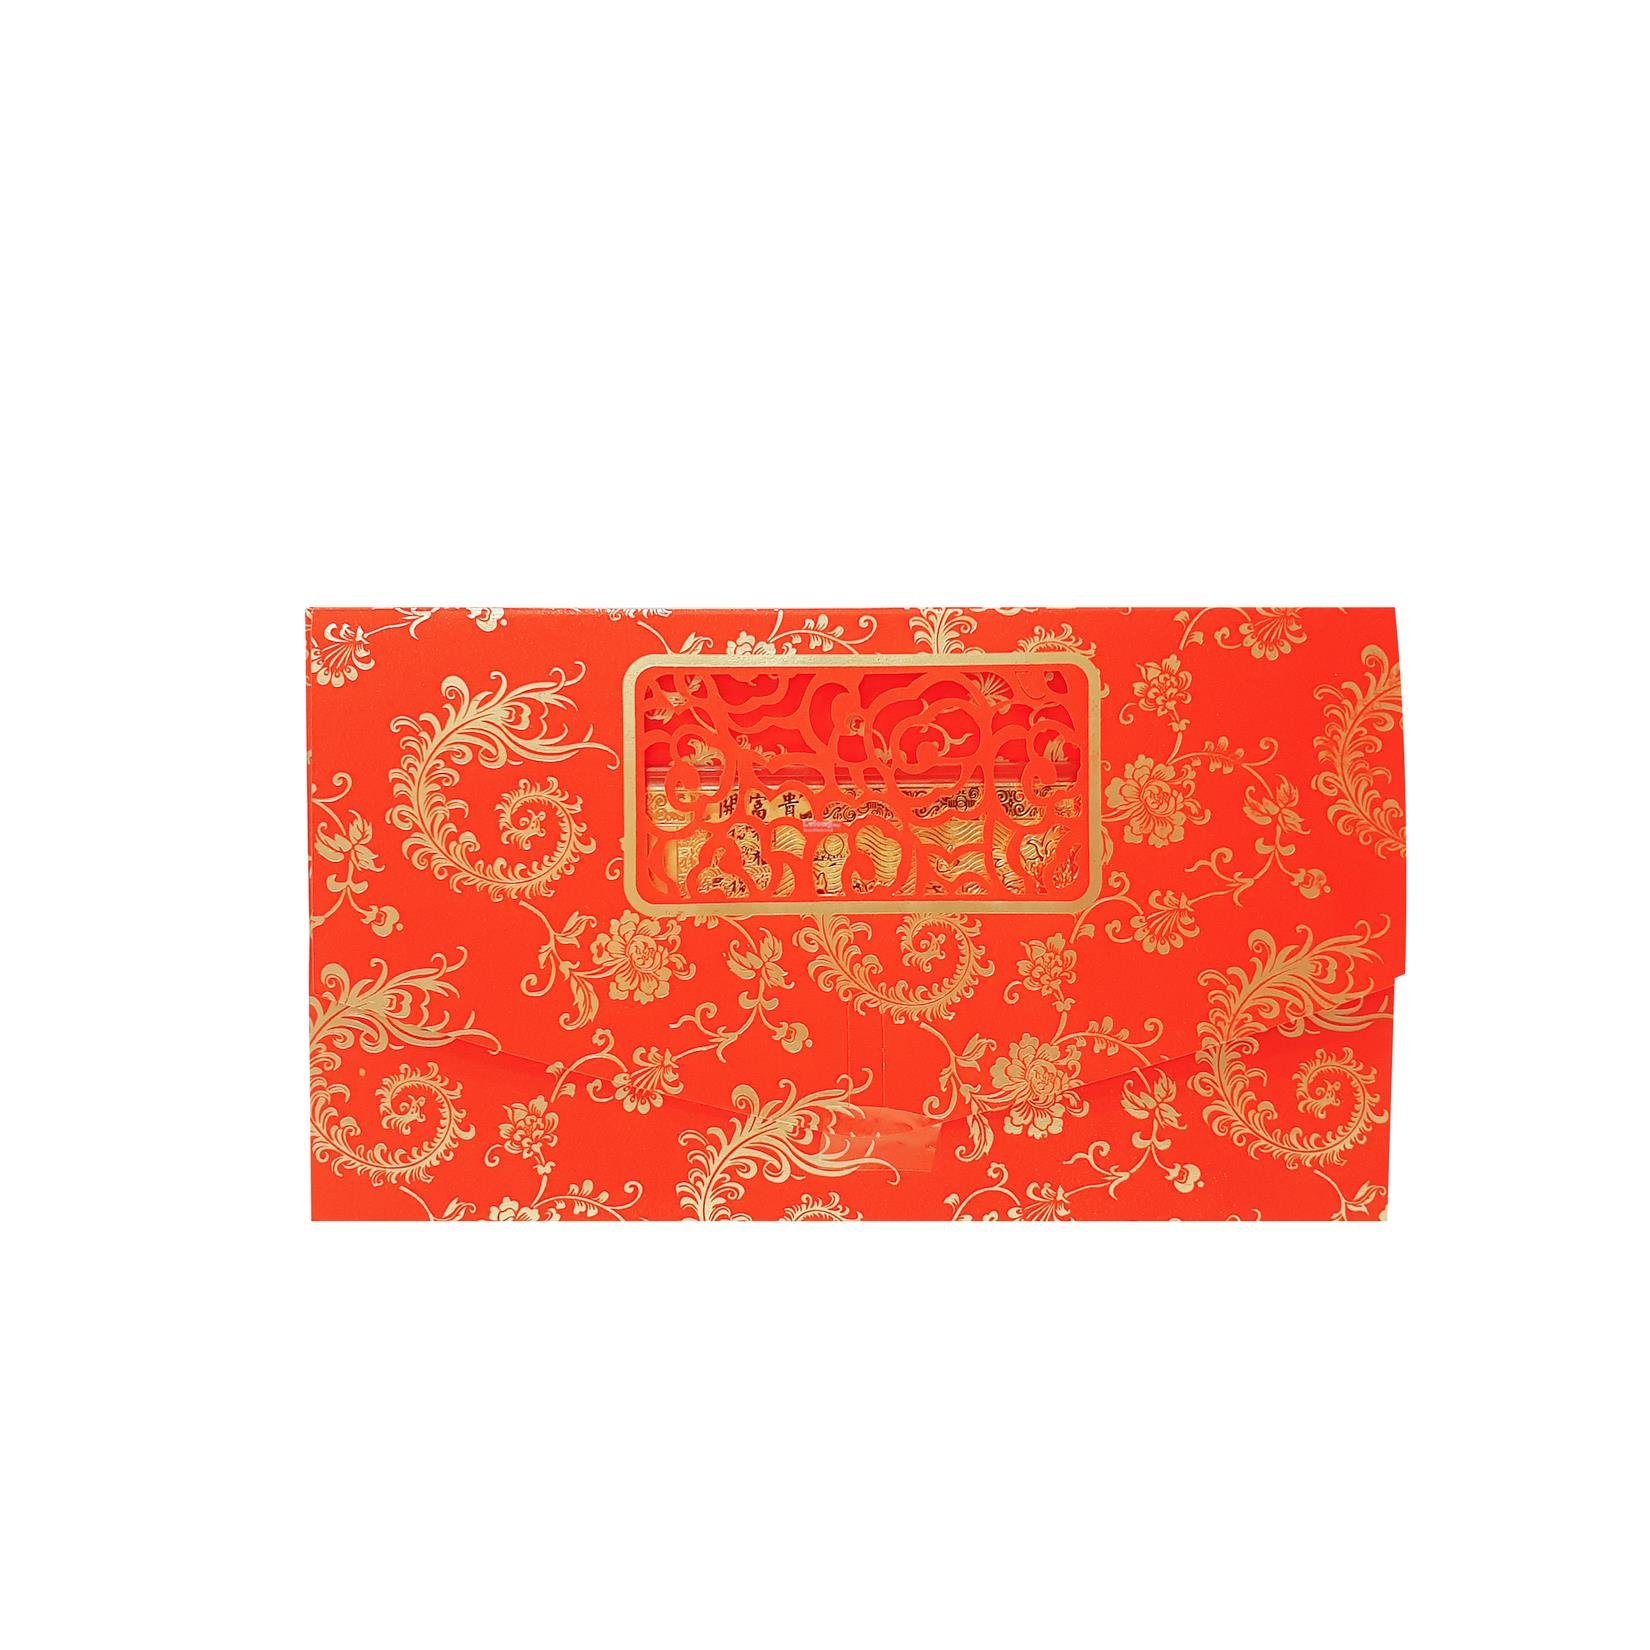 """花开富贵"" 999.9 Pure Gold Note – 0.2 Gram"